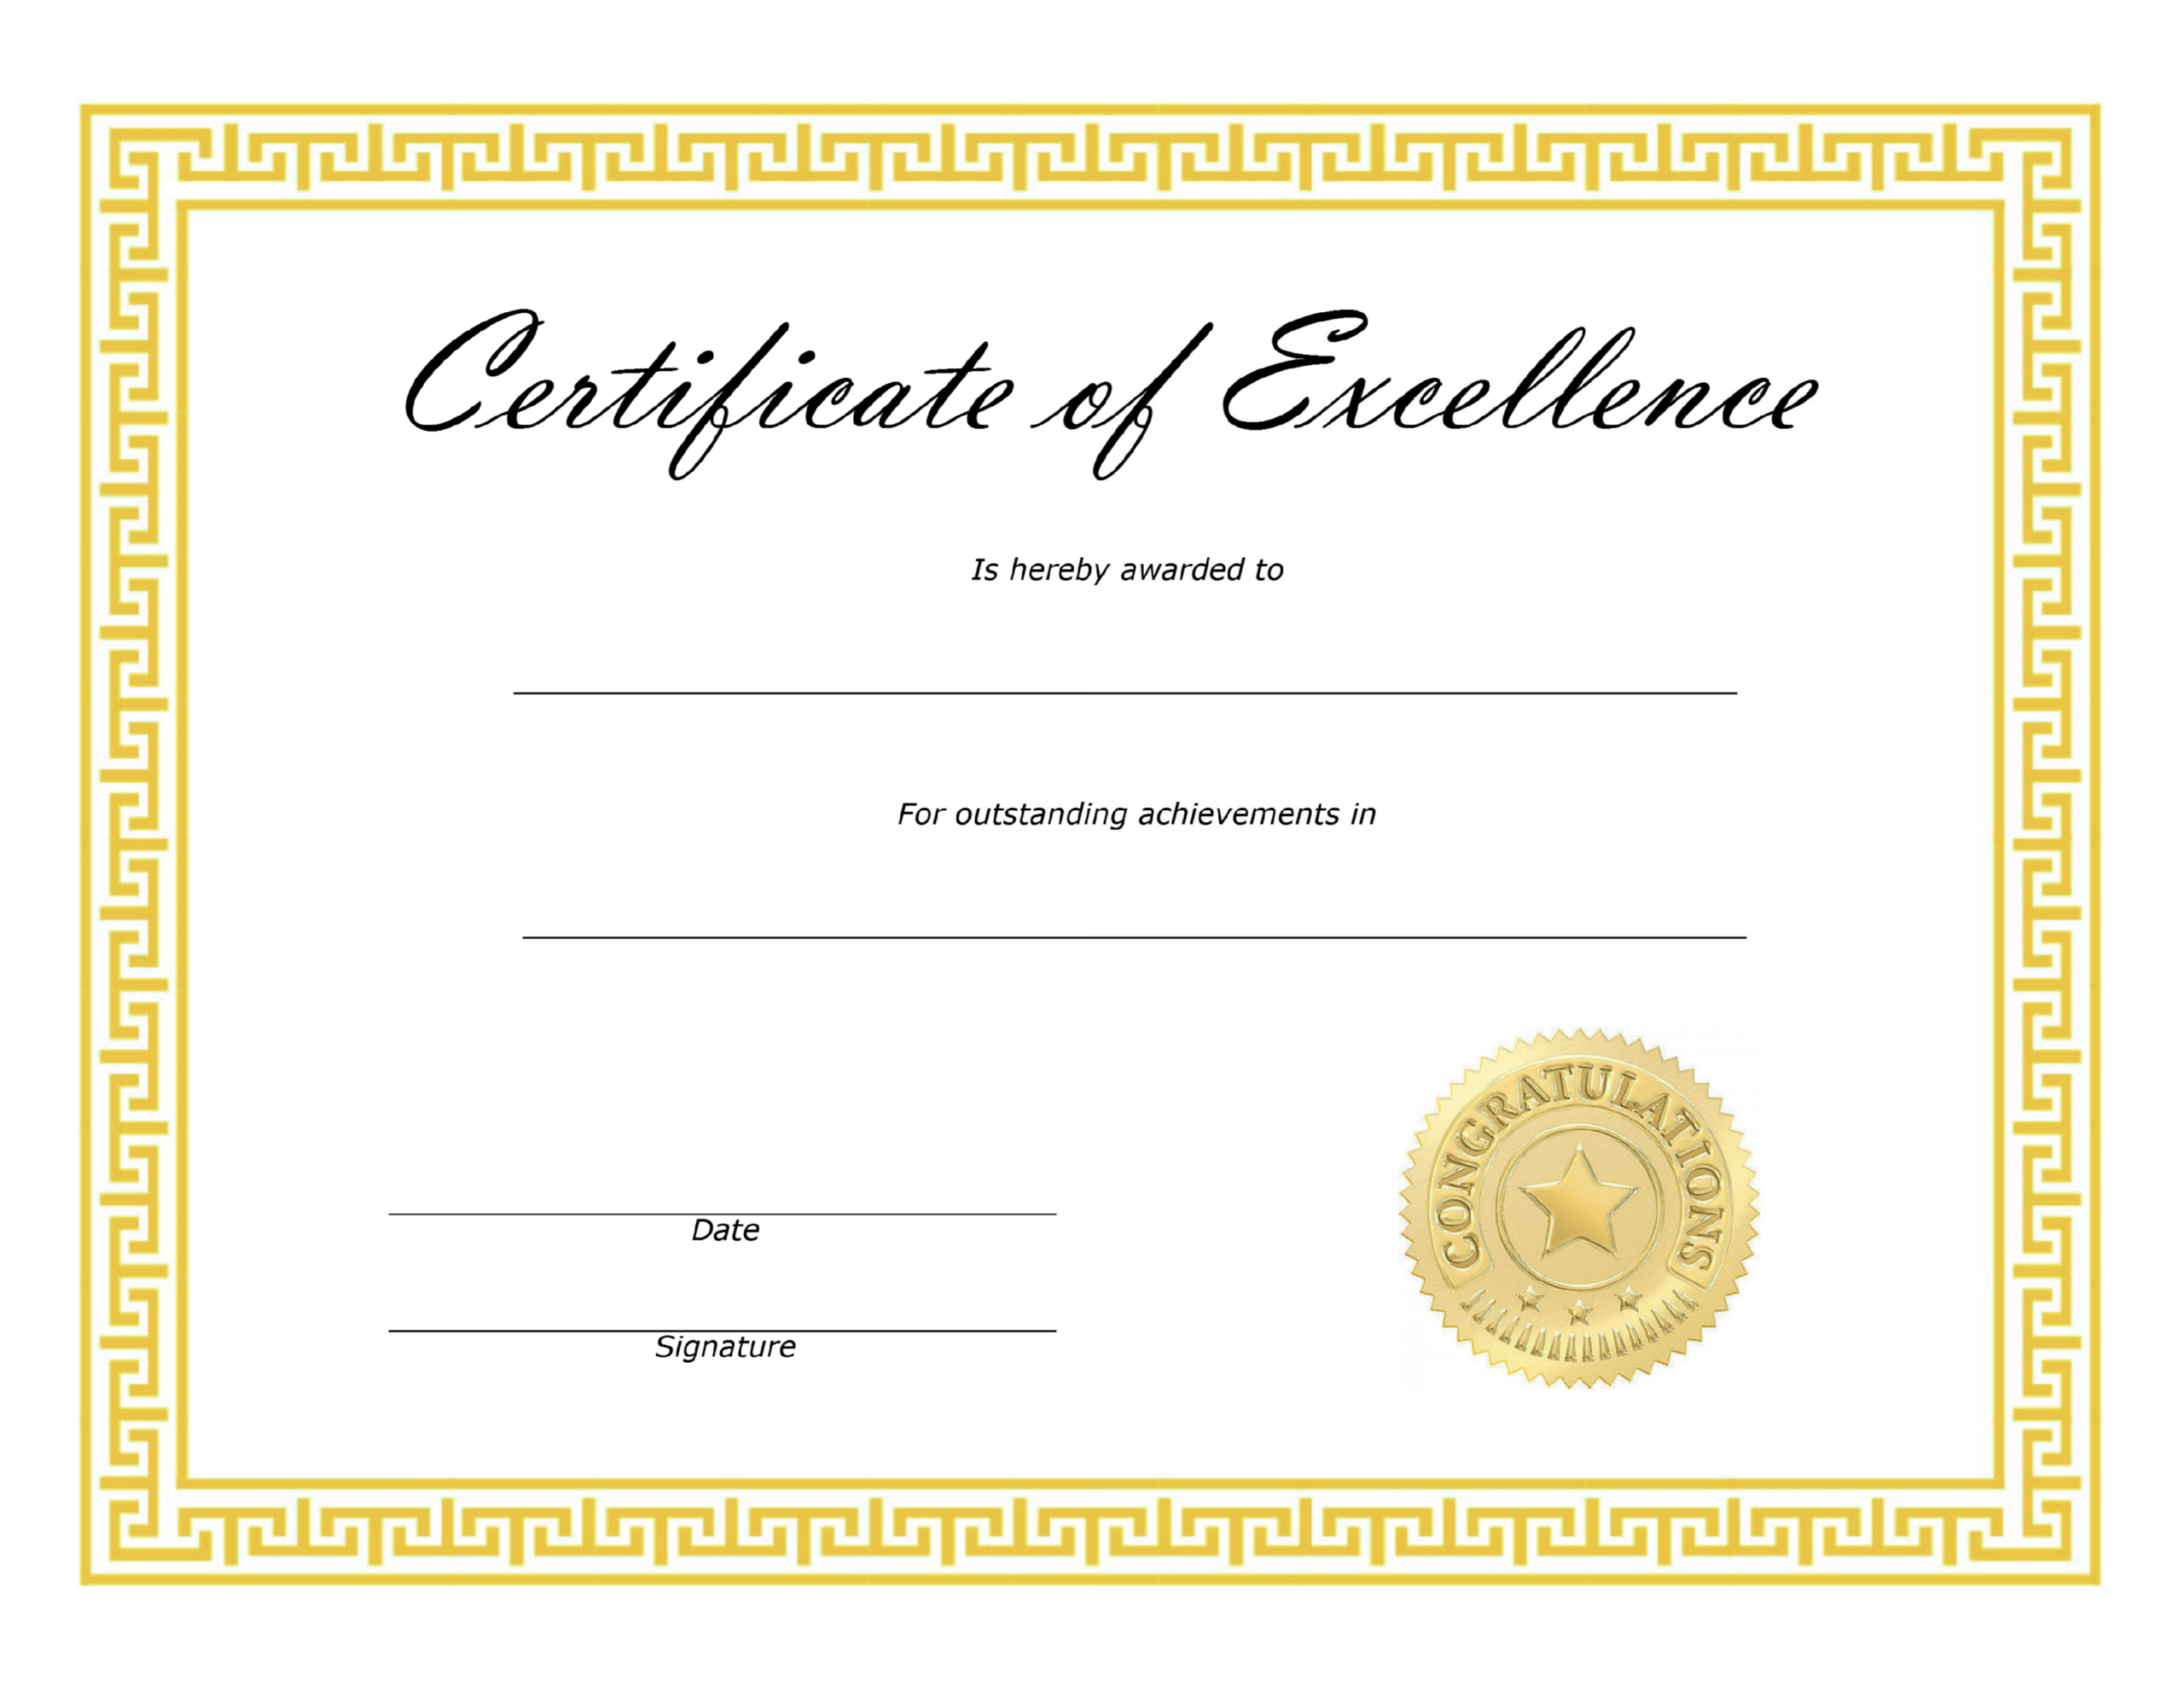 ❤️ Free Sample Certificate Of Excellence Templates❤️ For Free Certificate Of Excellence Template